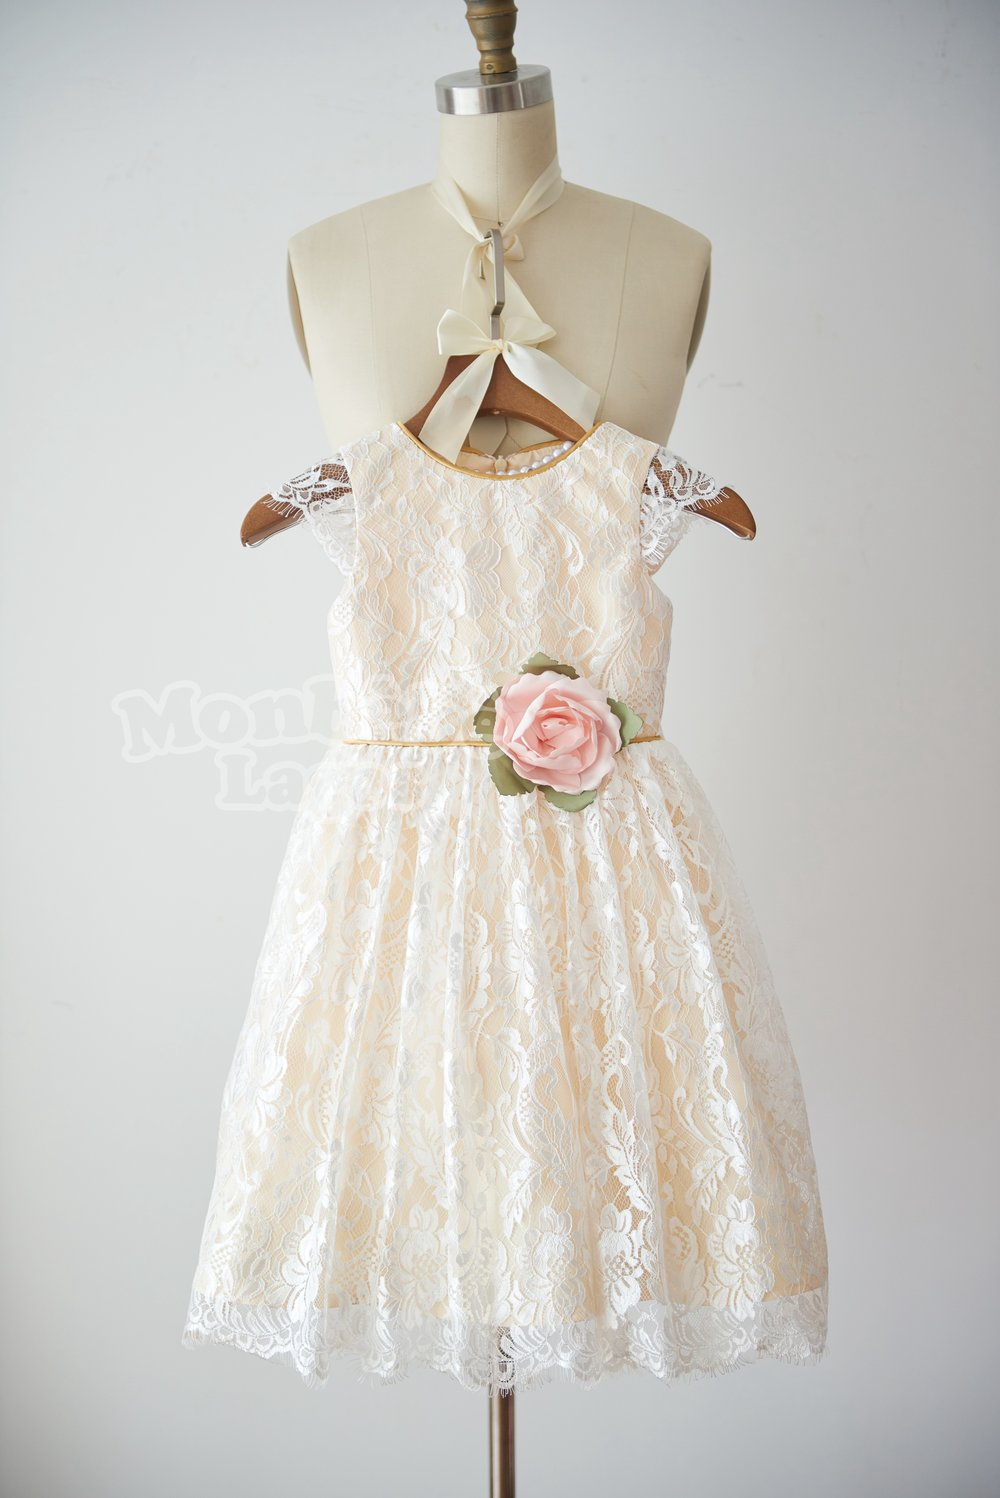 d73d30a9c0e 15 Pretty Perfect Flower Girl Dresses by MonbebeLagos - Perfete